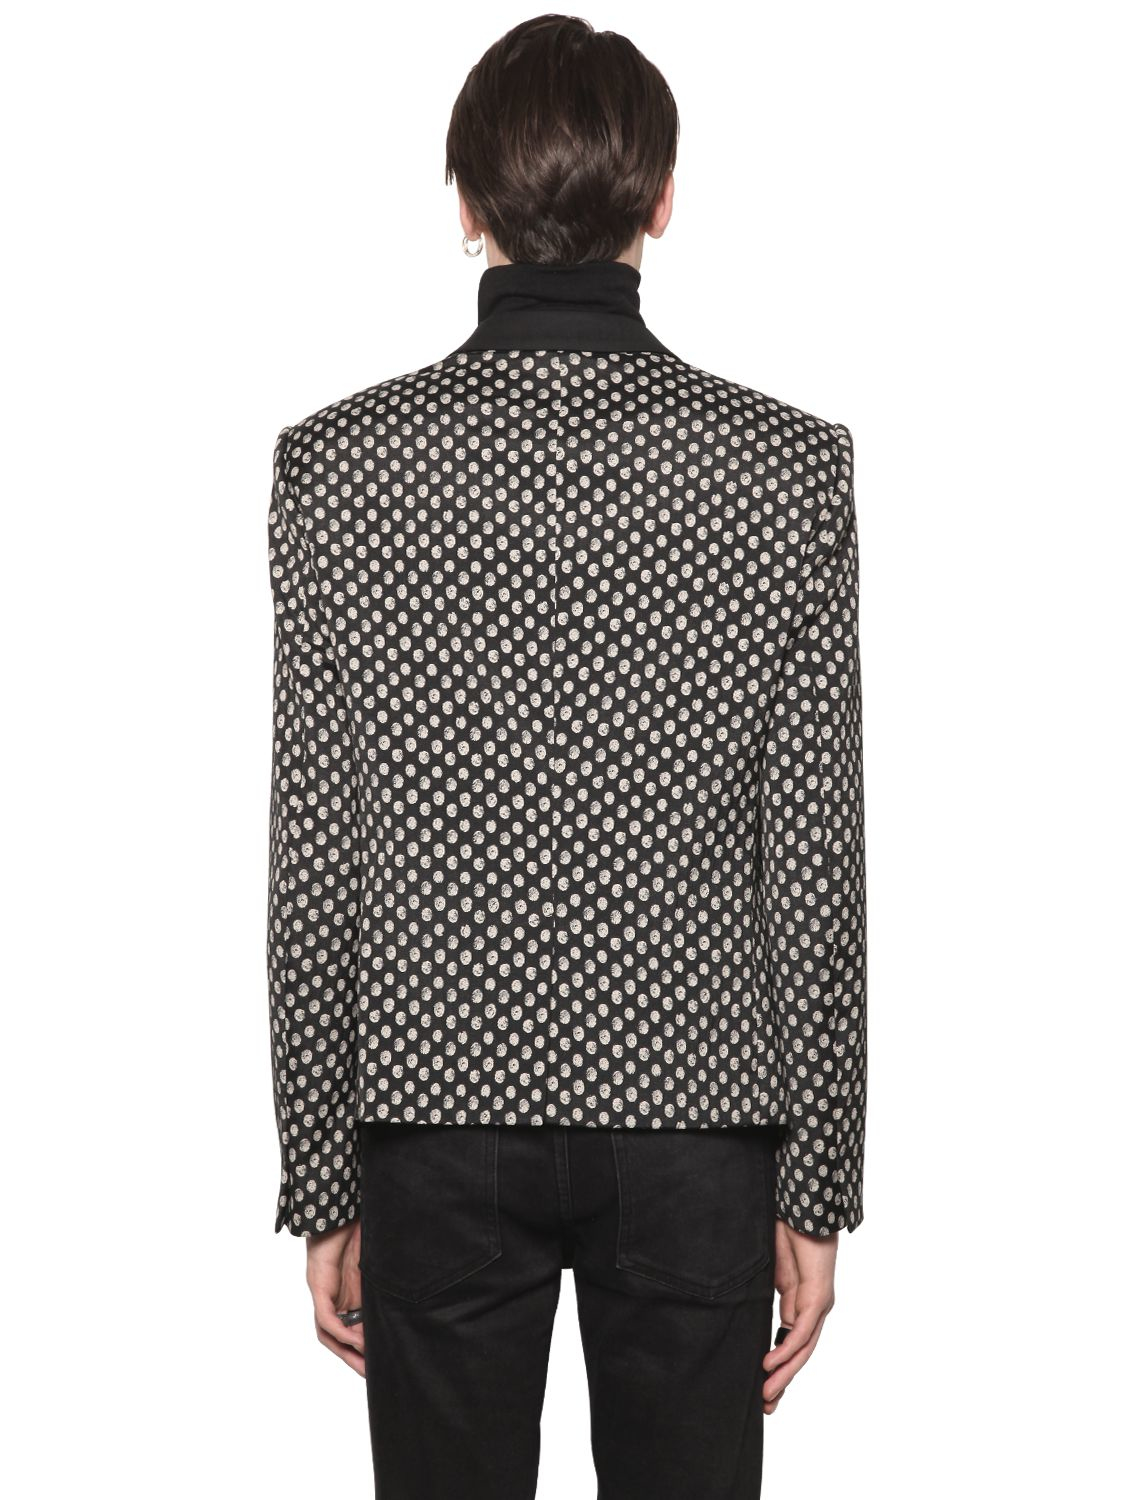 All Apologies Polka Dot Cool Wool Jacquard Jacket for Men